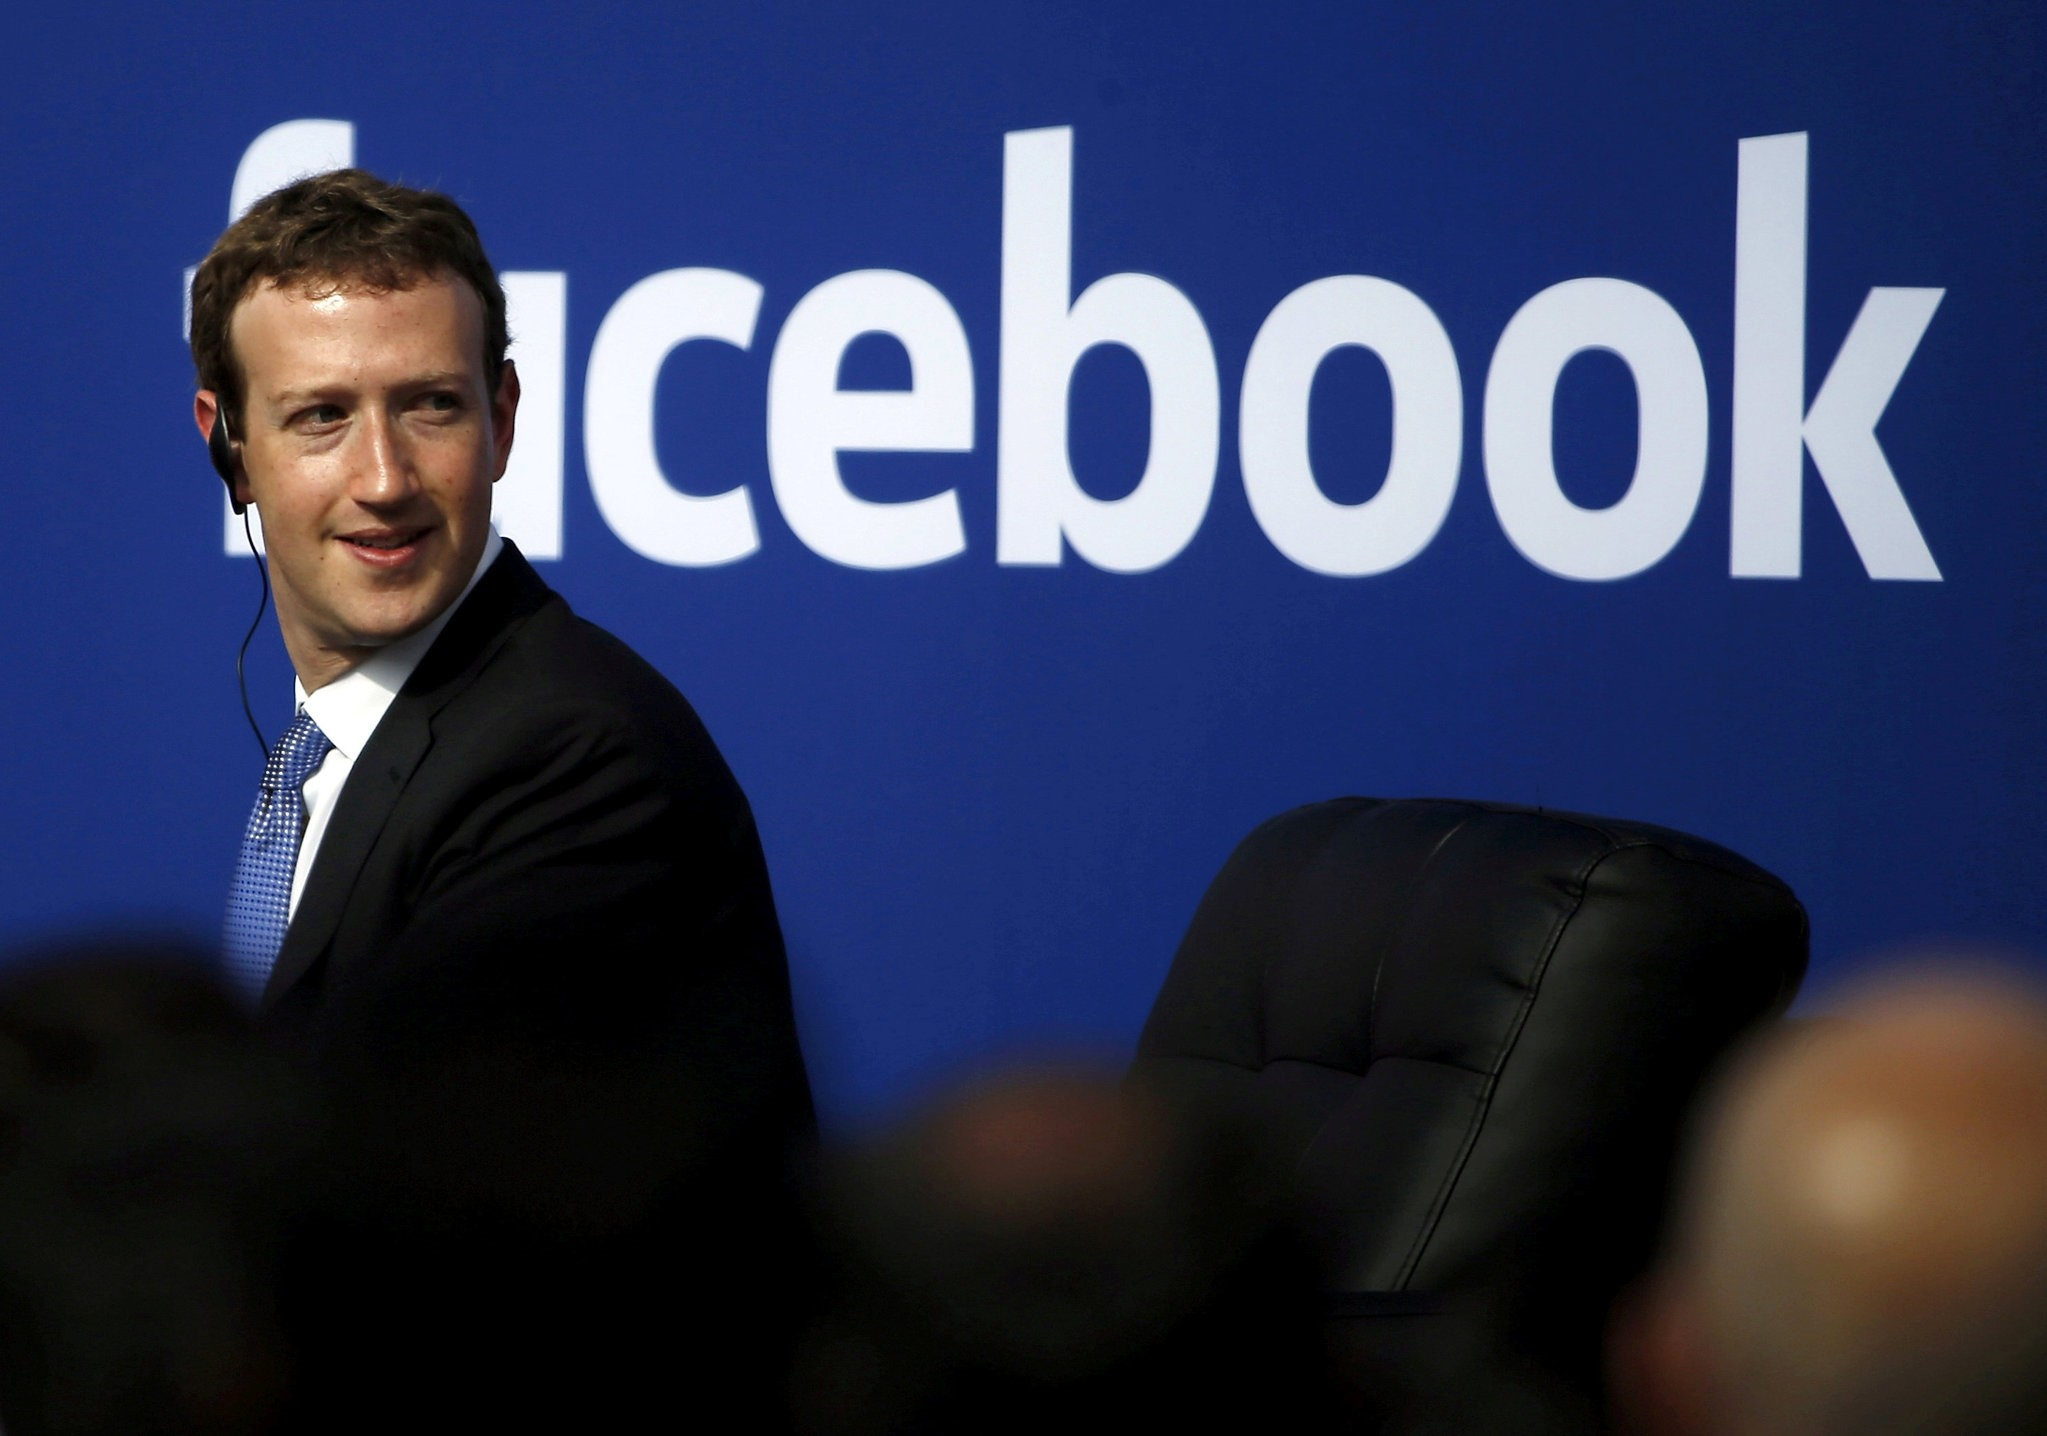 Facebook CEO Mark Zuckerberg is seen on stage during a town hall at Facebook's headquarters in Menlo Park, California September 27, 2015. (REUTERS Photo)